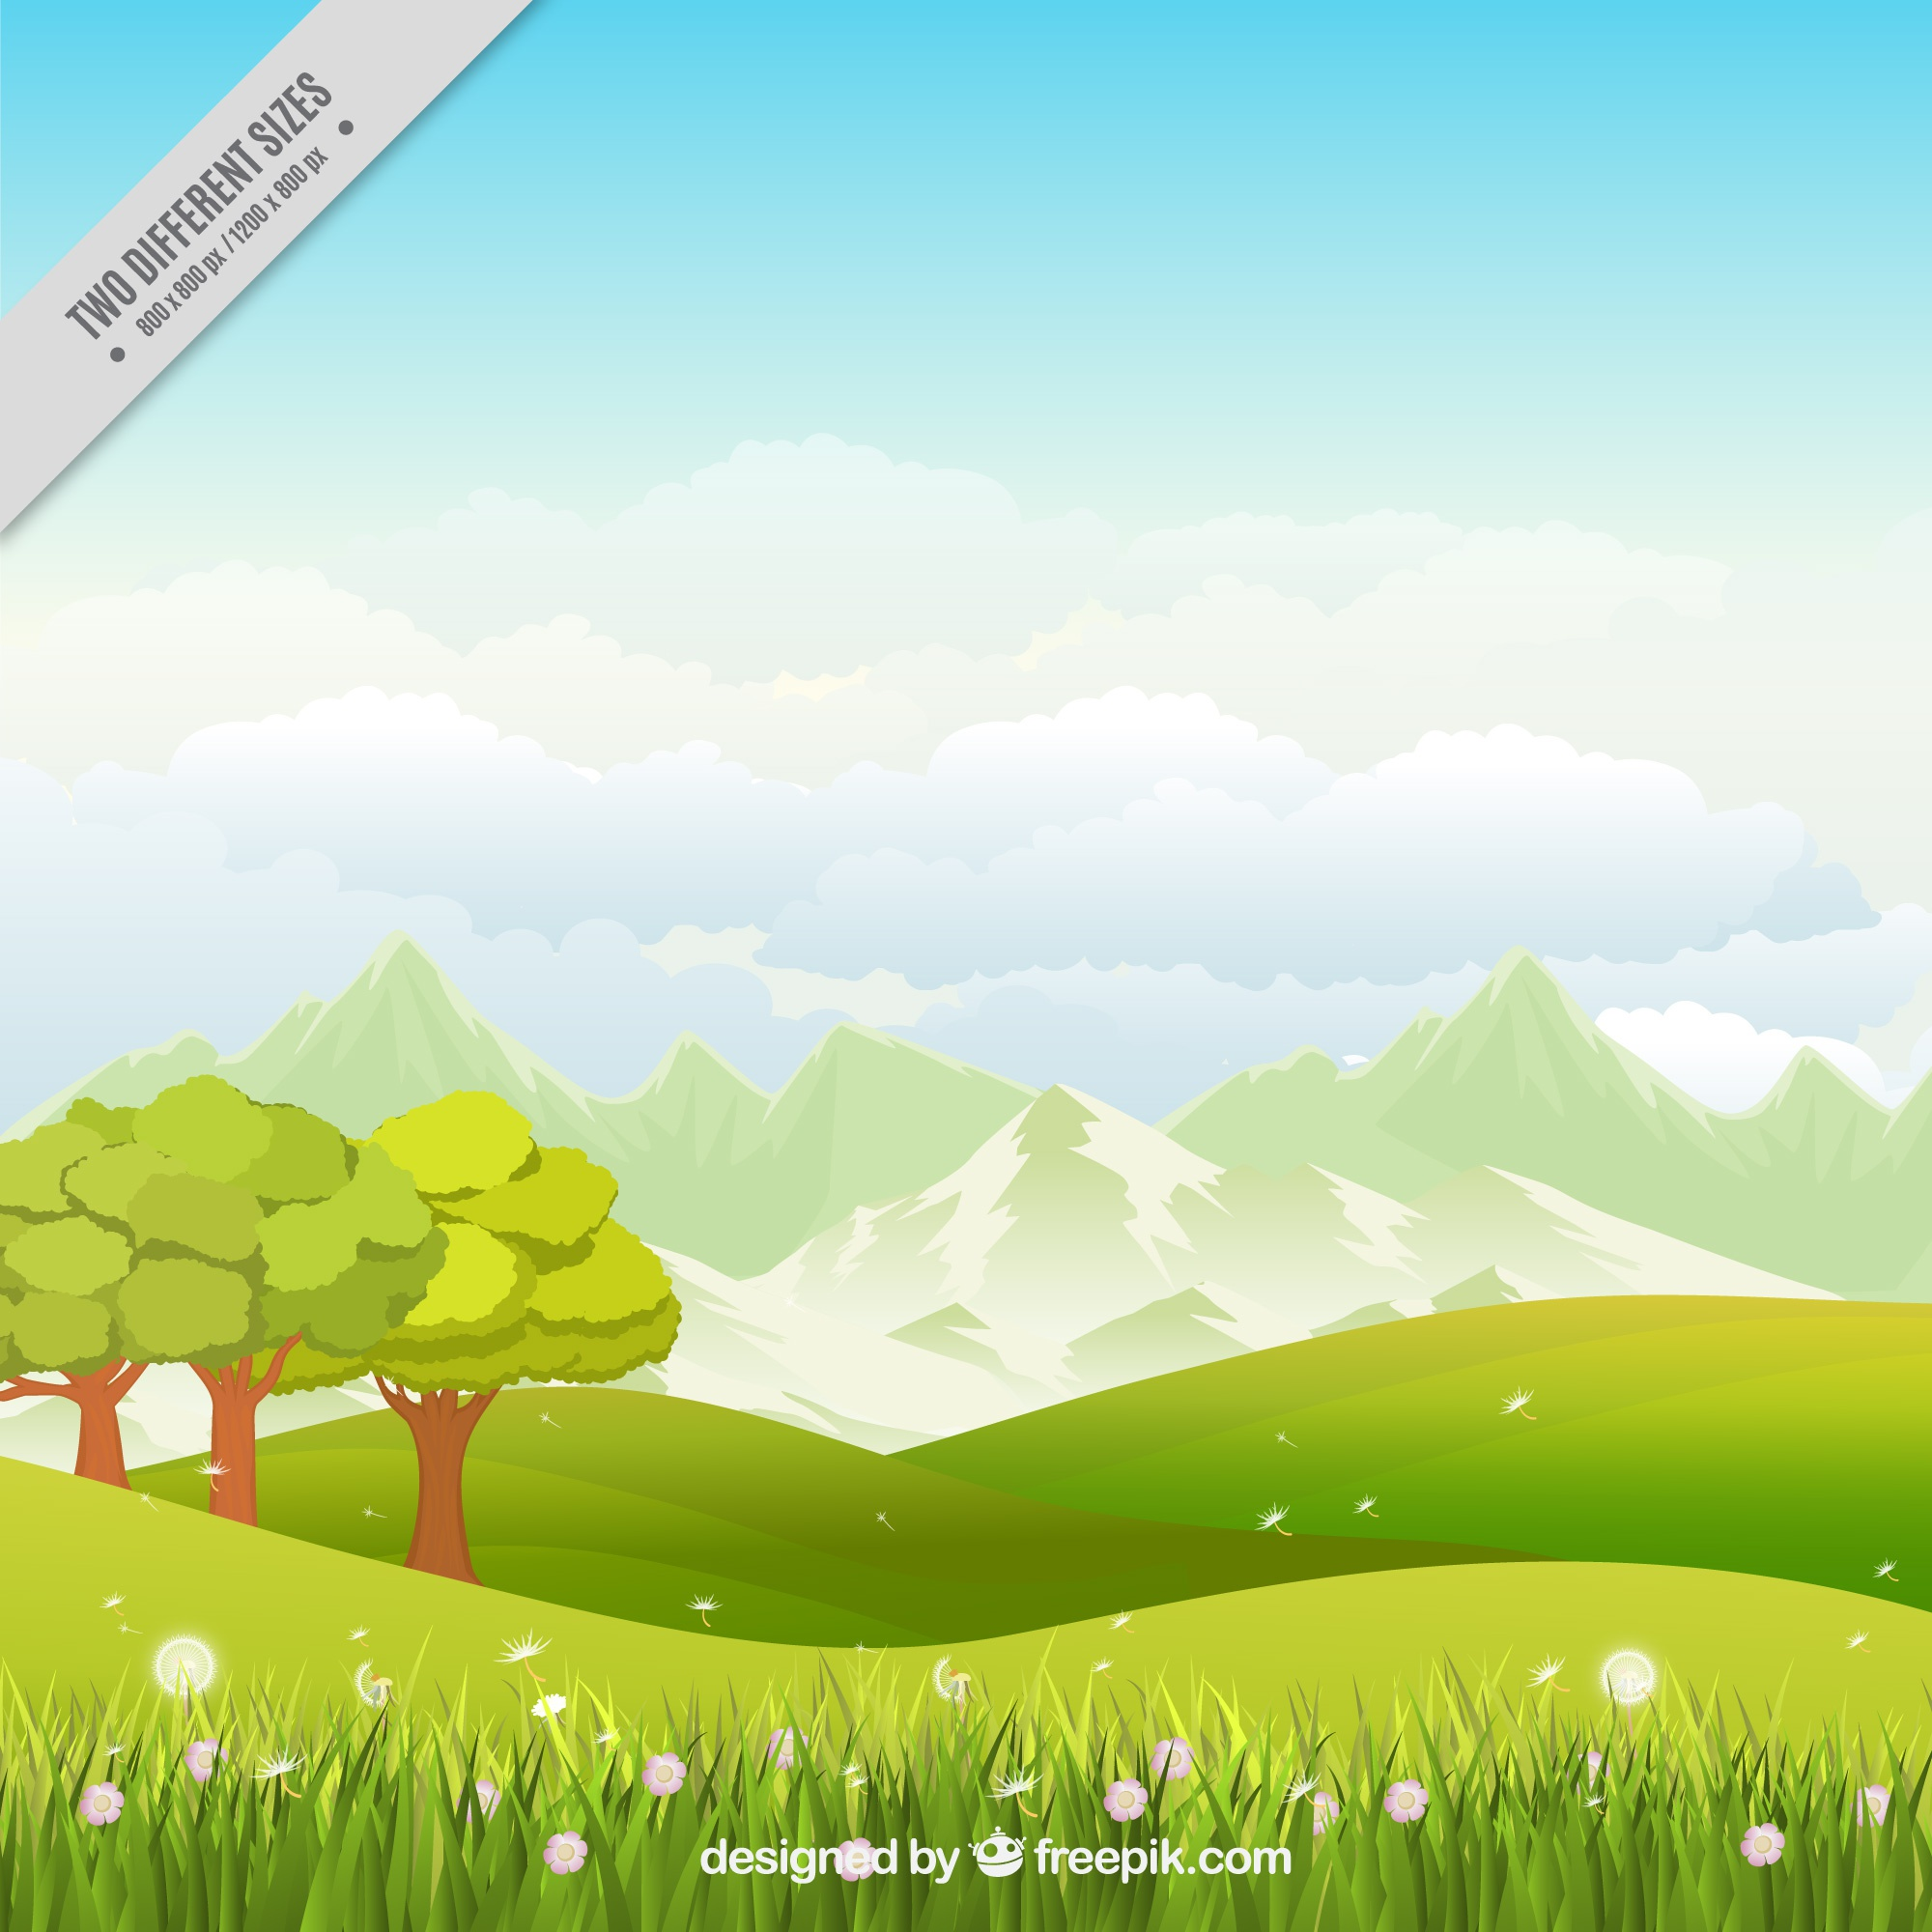 Meadow background with trees and flowers